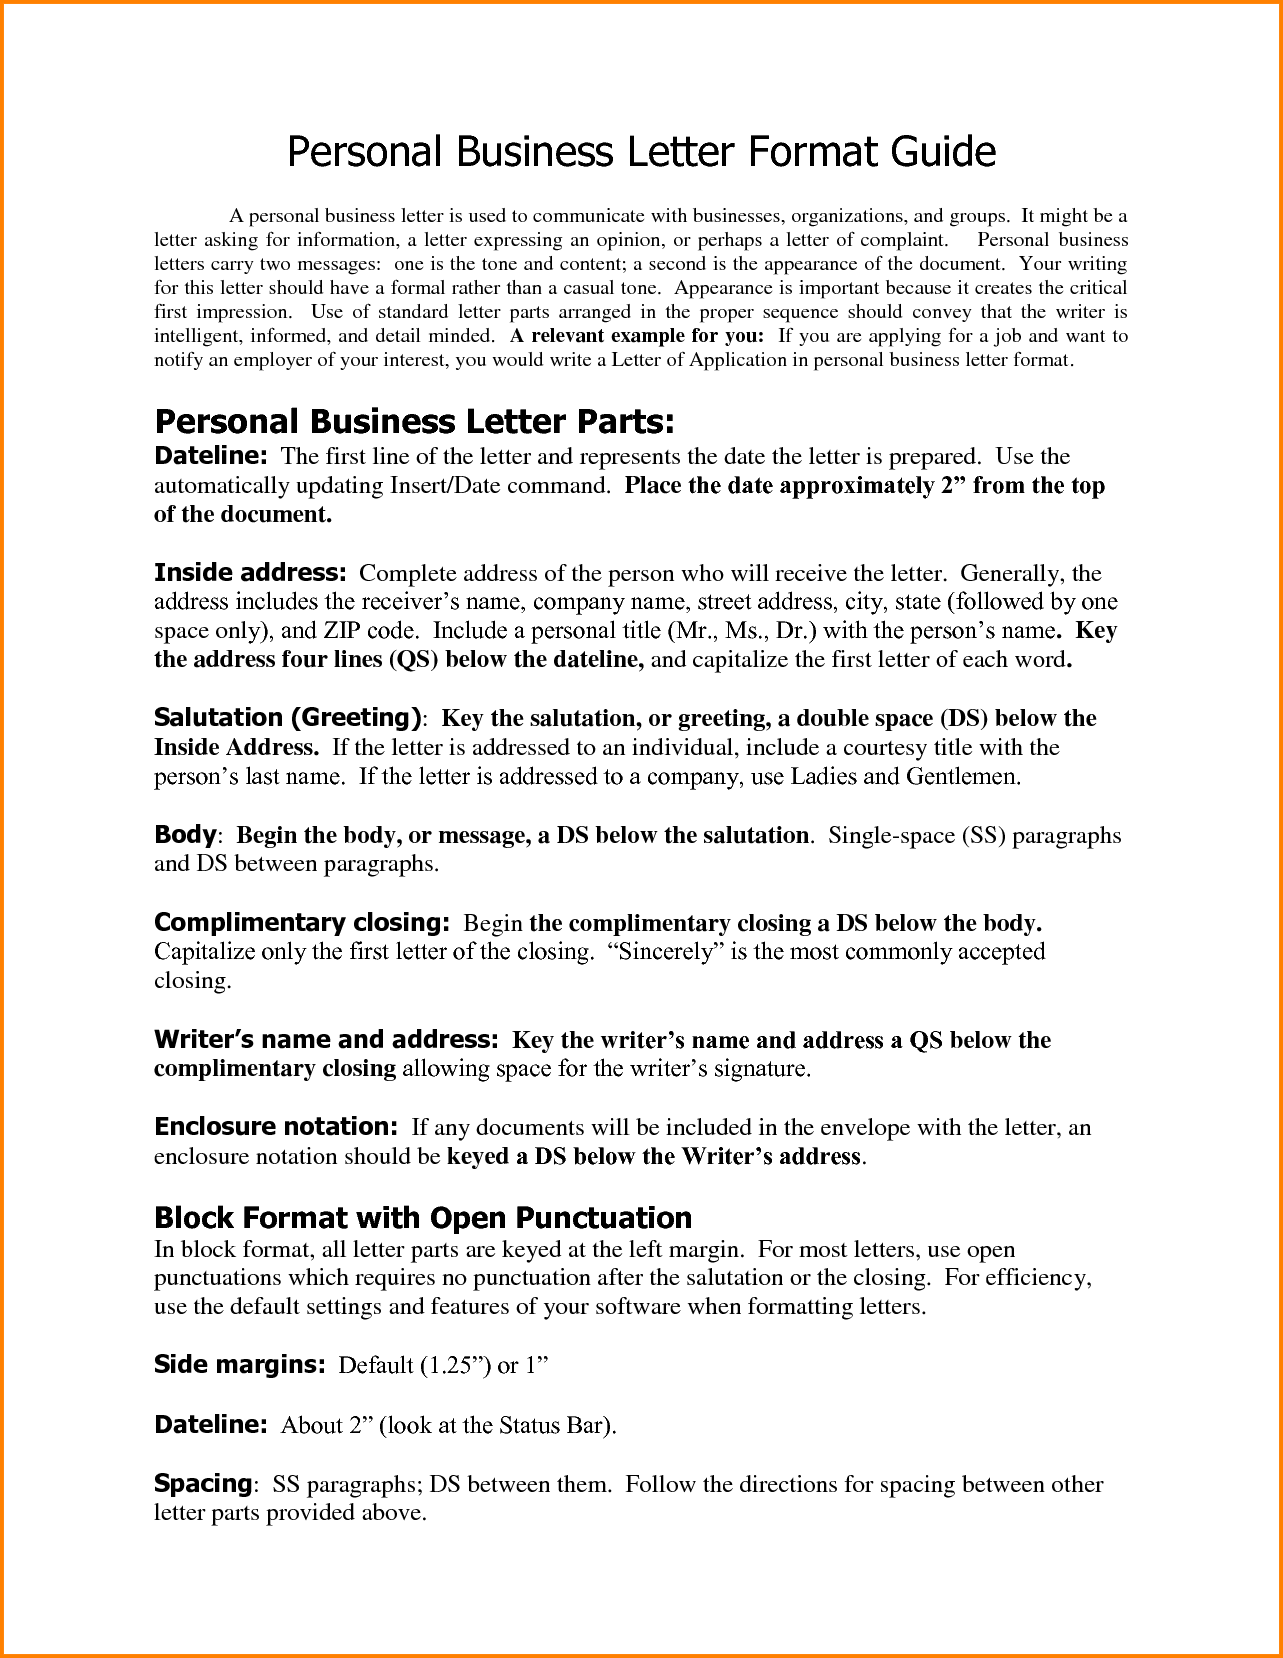 Example Letter Of Apology Fascinating Letter Format Business Enclosure Worded Example Apology Letters .